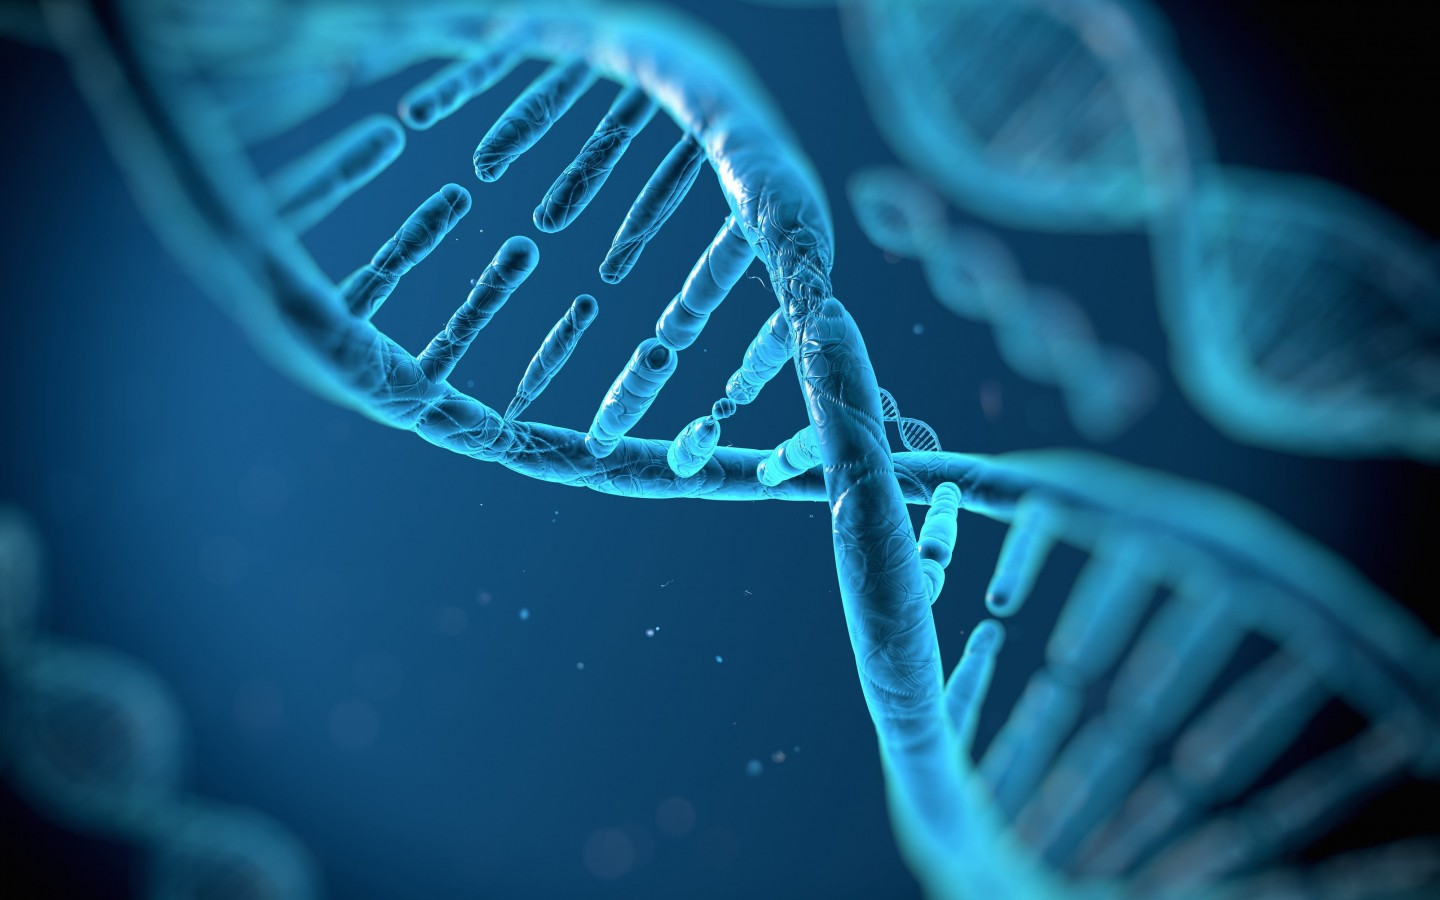 DNA Structure Wallpaper for Desktop 1440x900